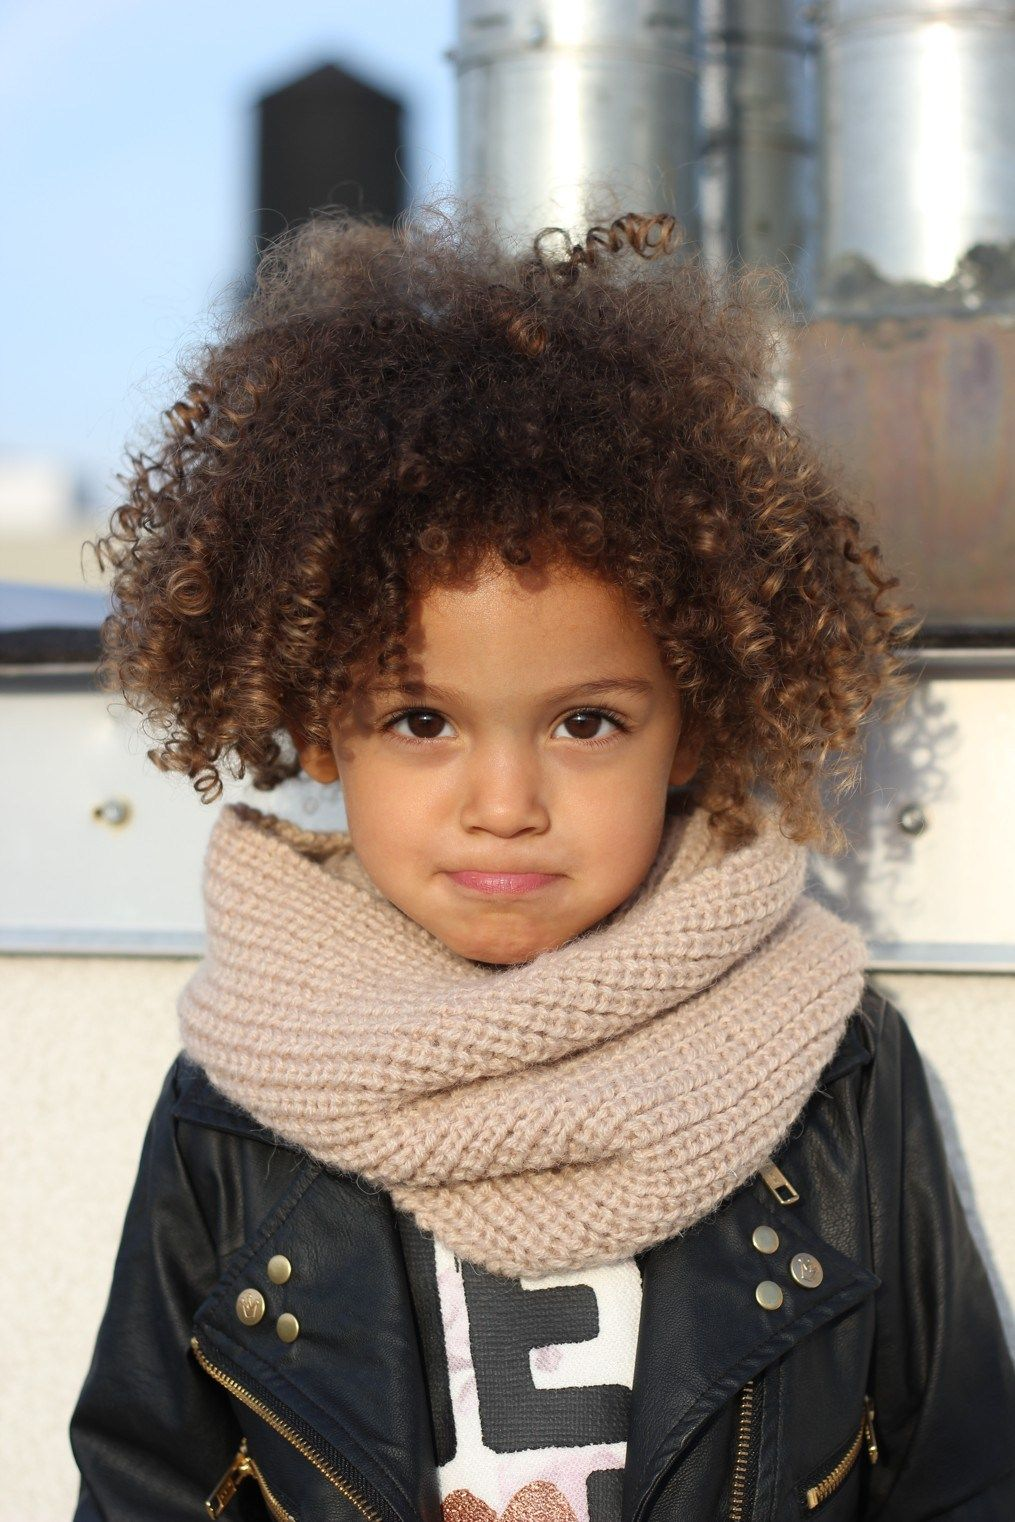 Get Layered With Images Curly Hair Baby Boy Curly Hair Baby